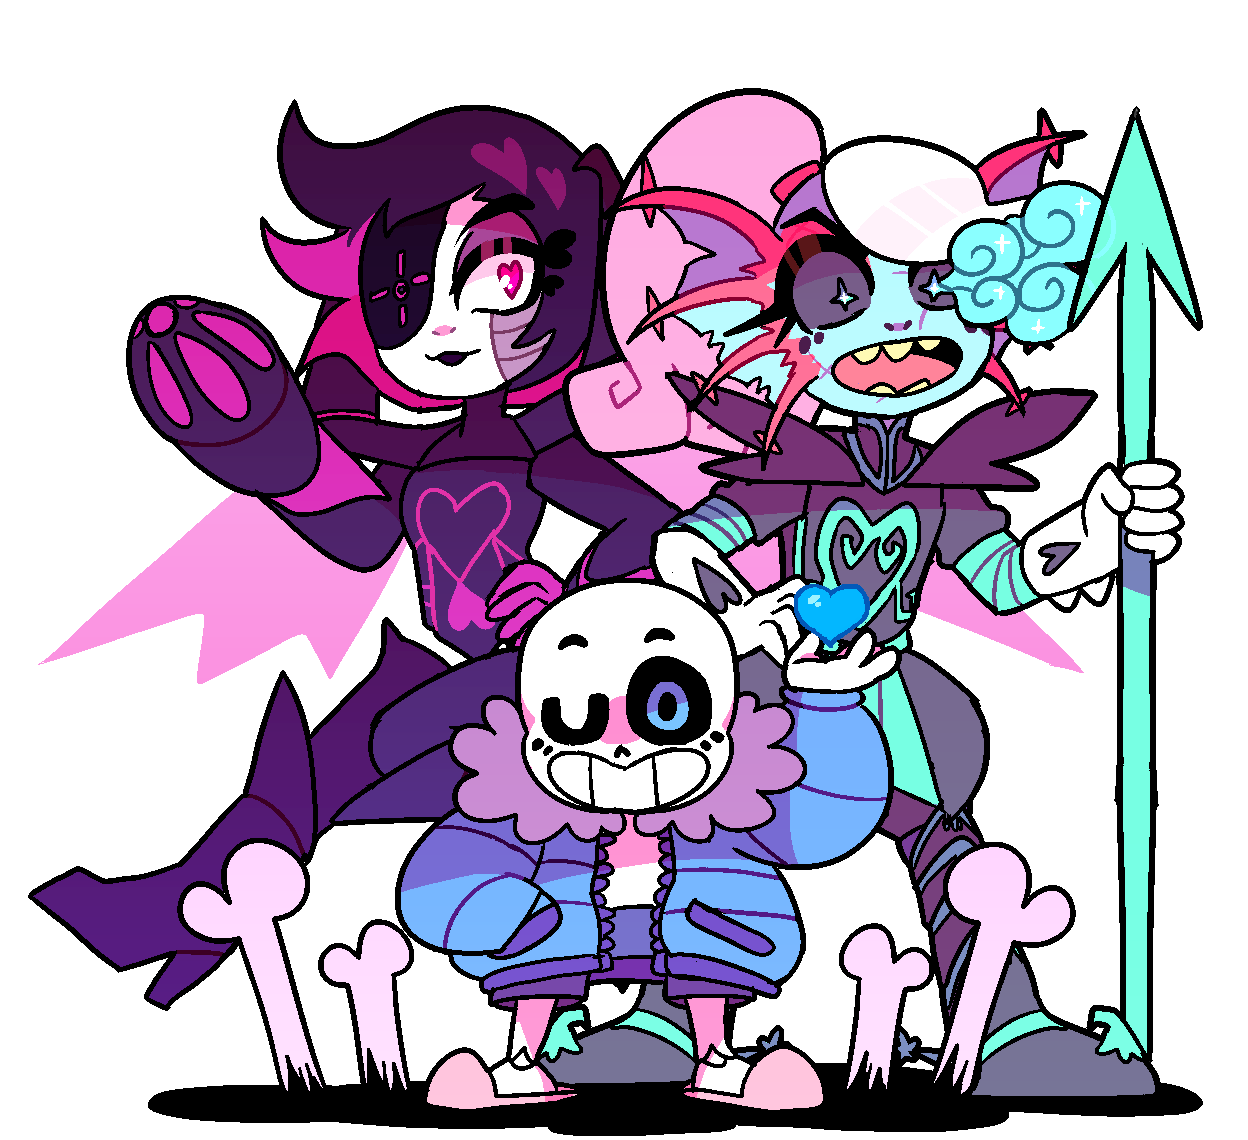 satsuci: ☆ BAD TIME TRIO ☆ || twitter version || separate versions ||